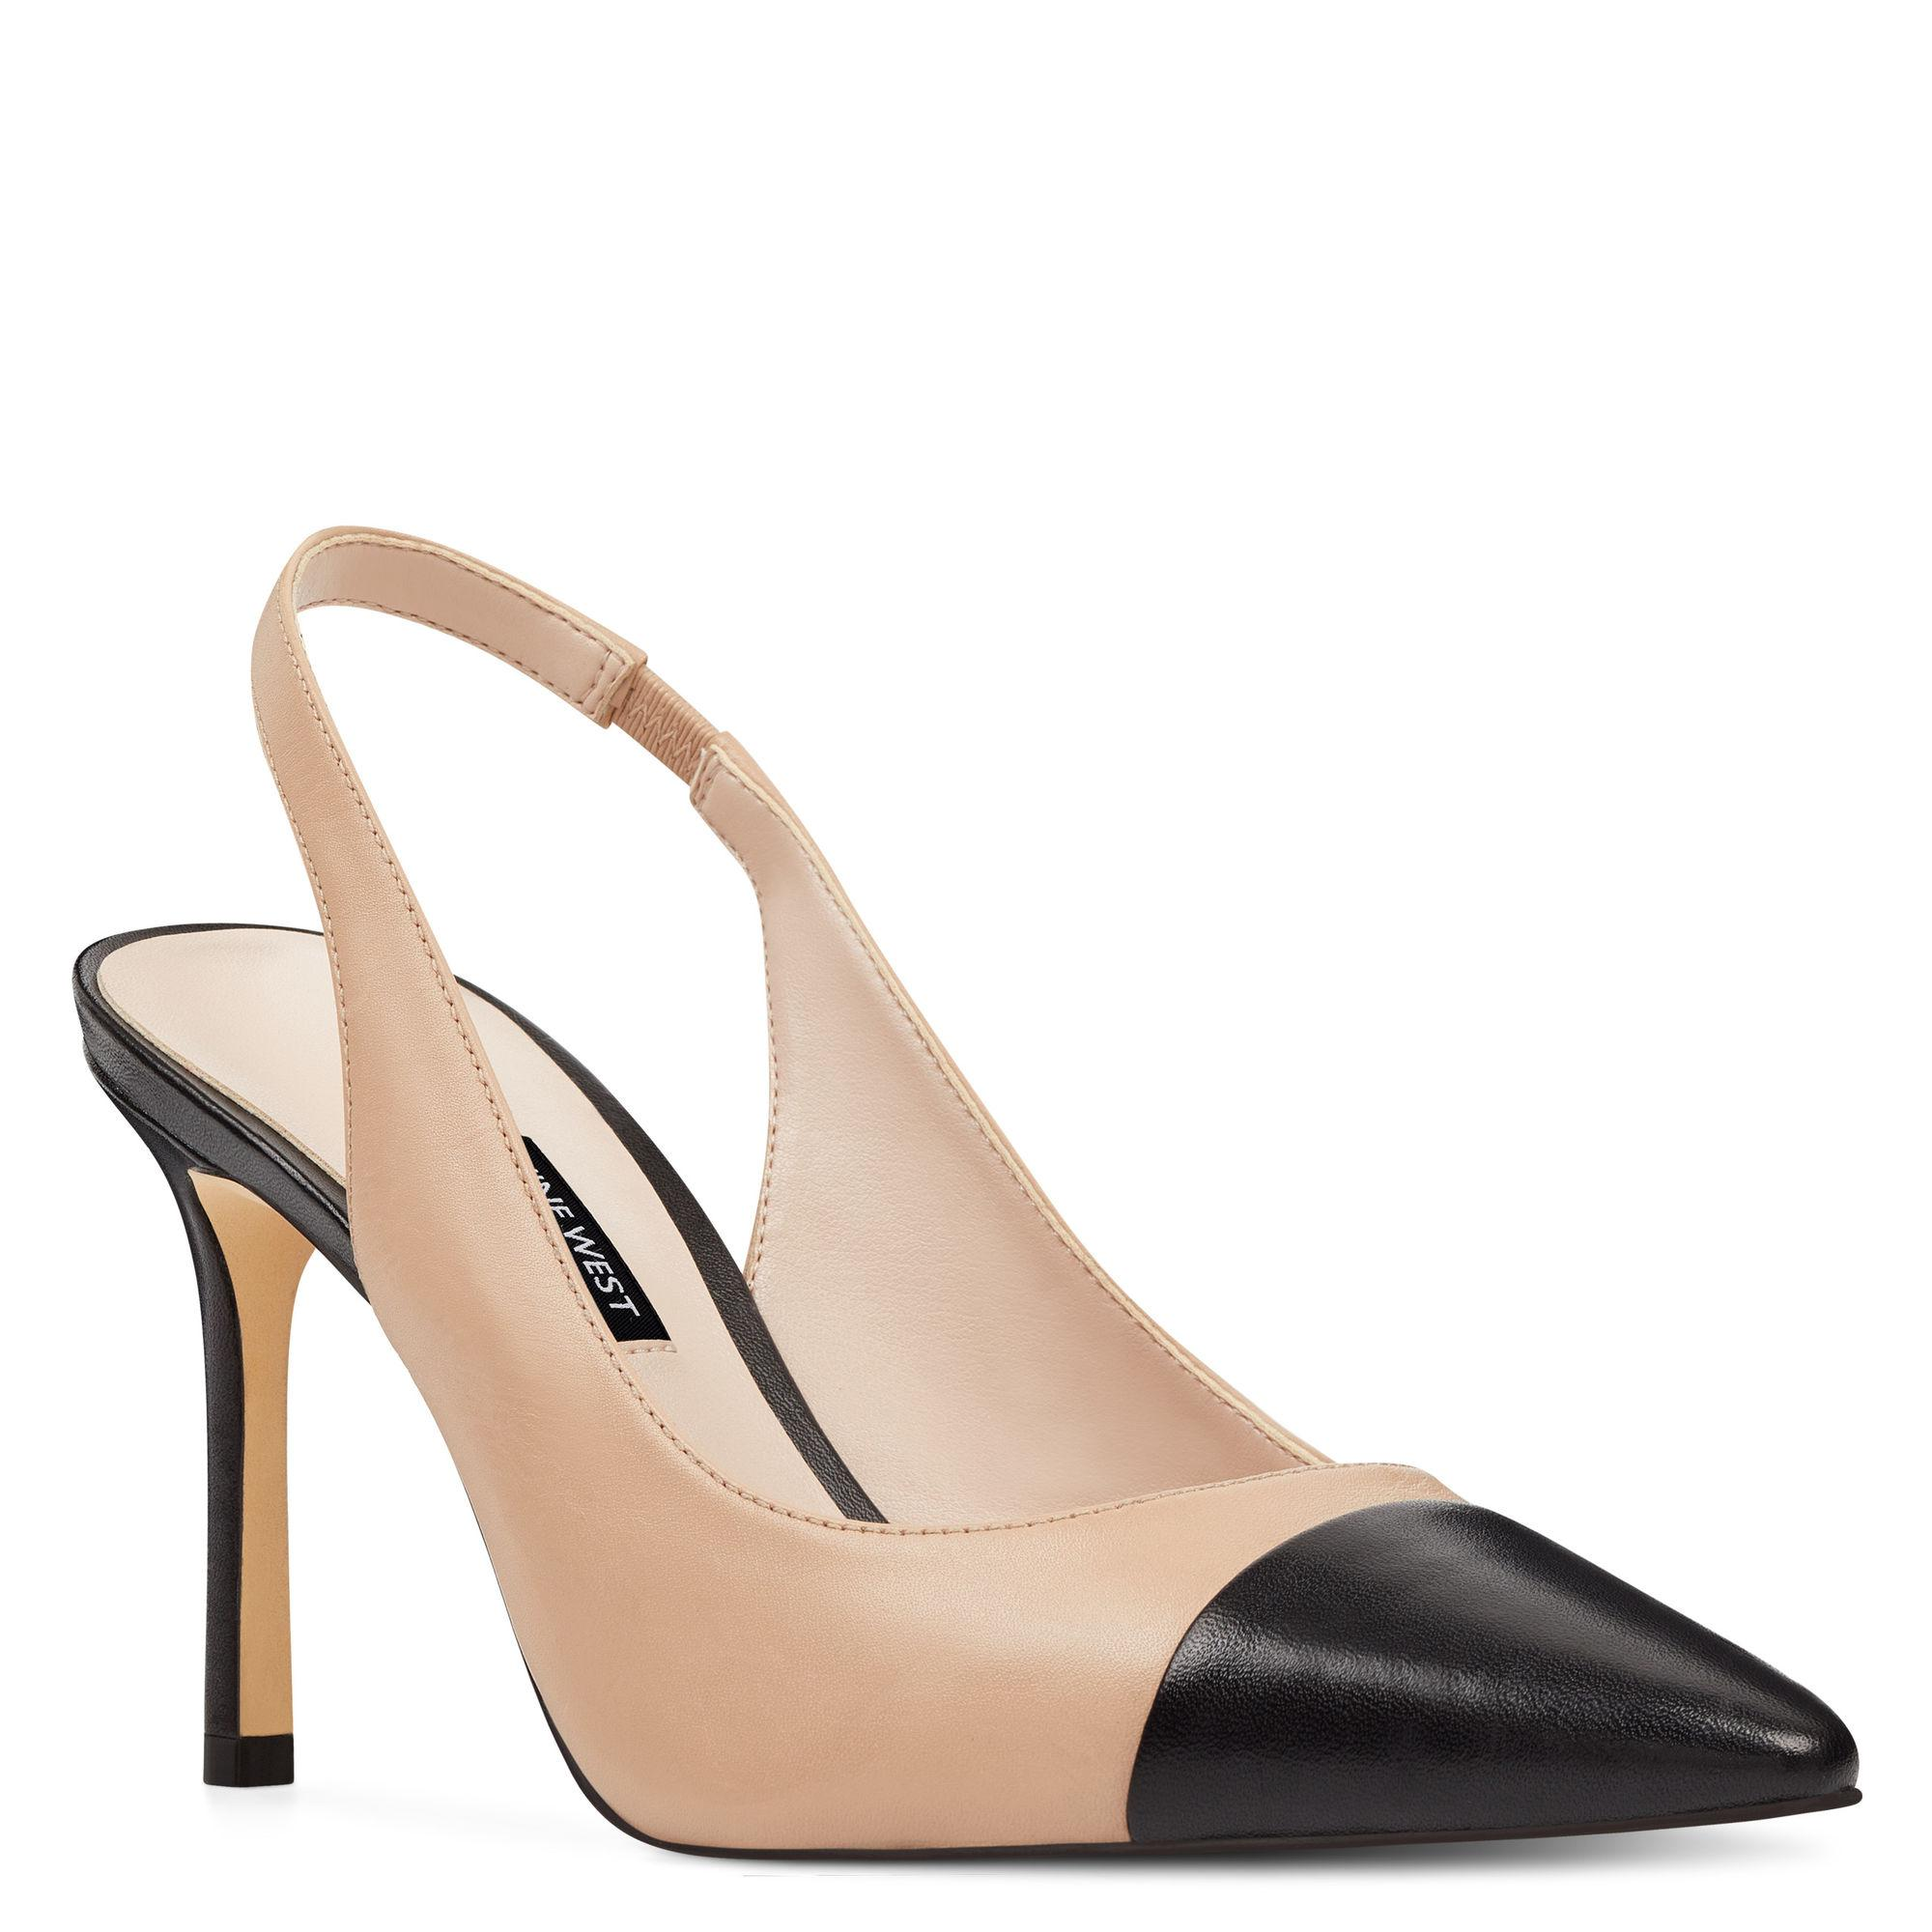 bc6b0444a01 Lyst - Nine West Exuberate Slingback Pumps in Natural